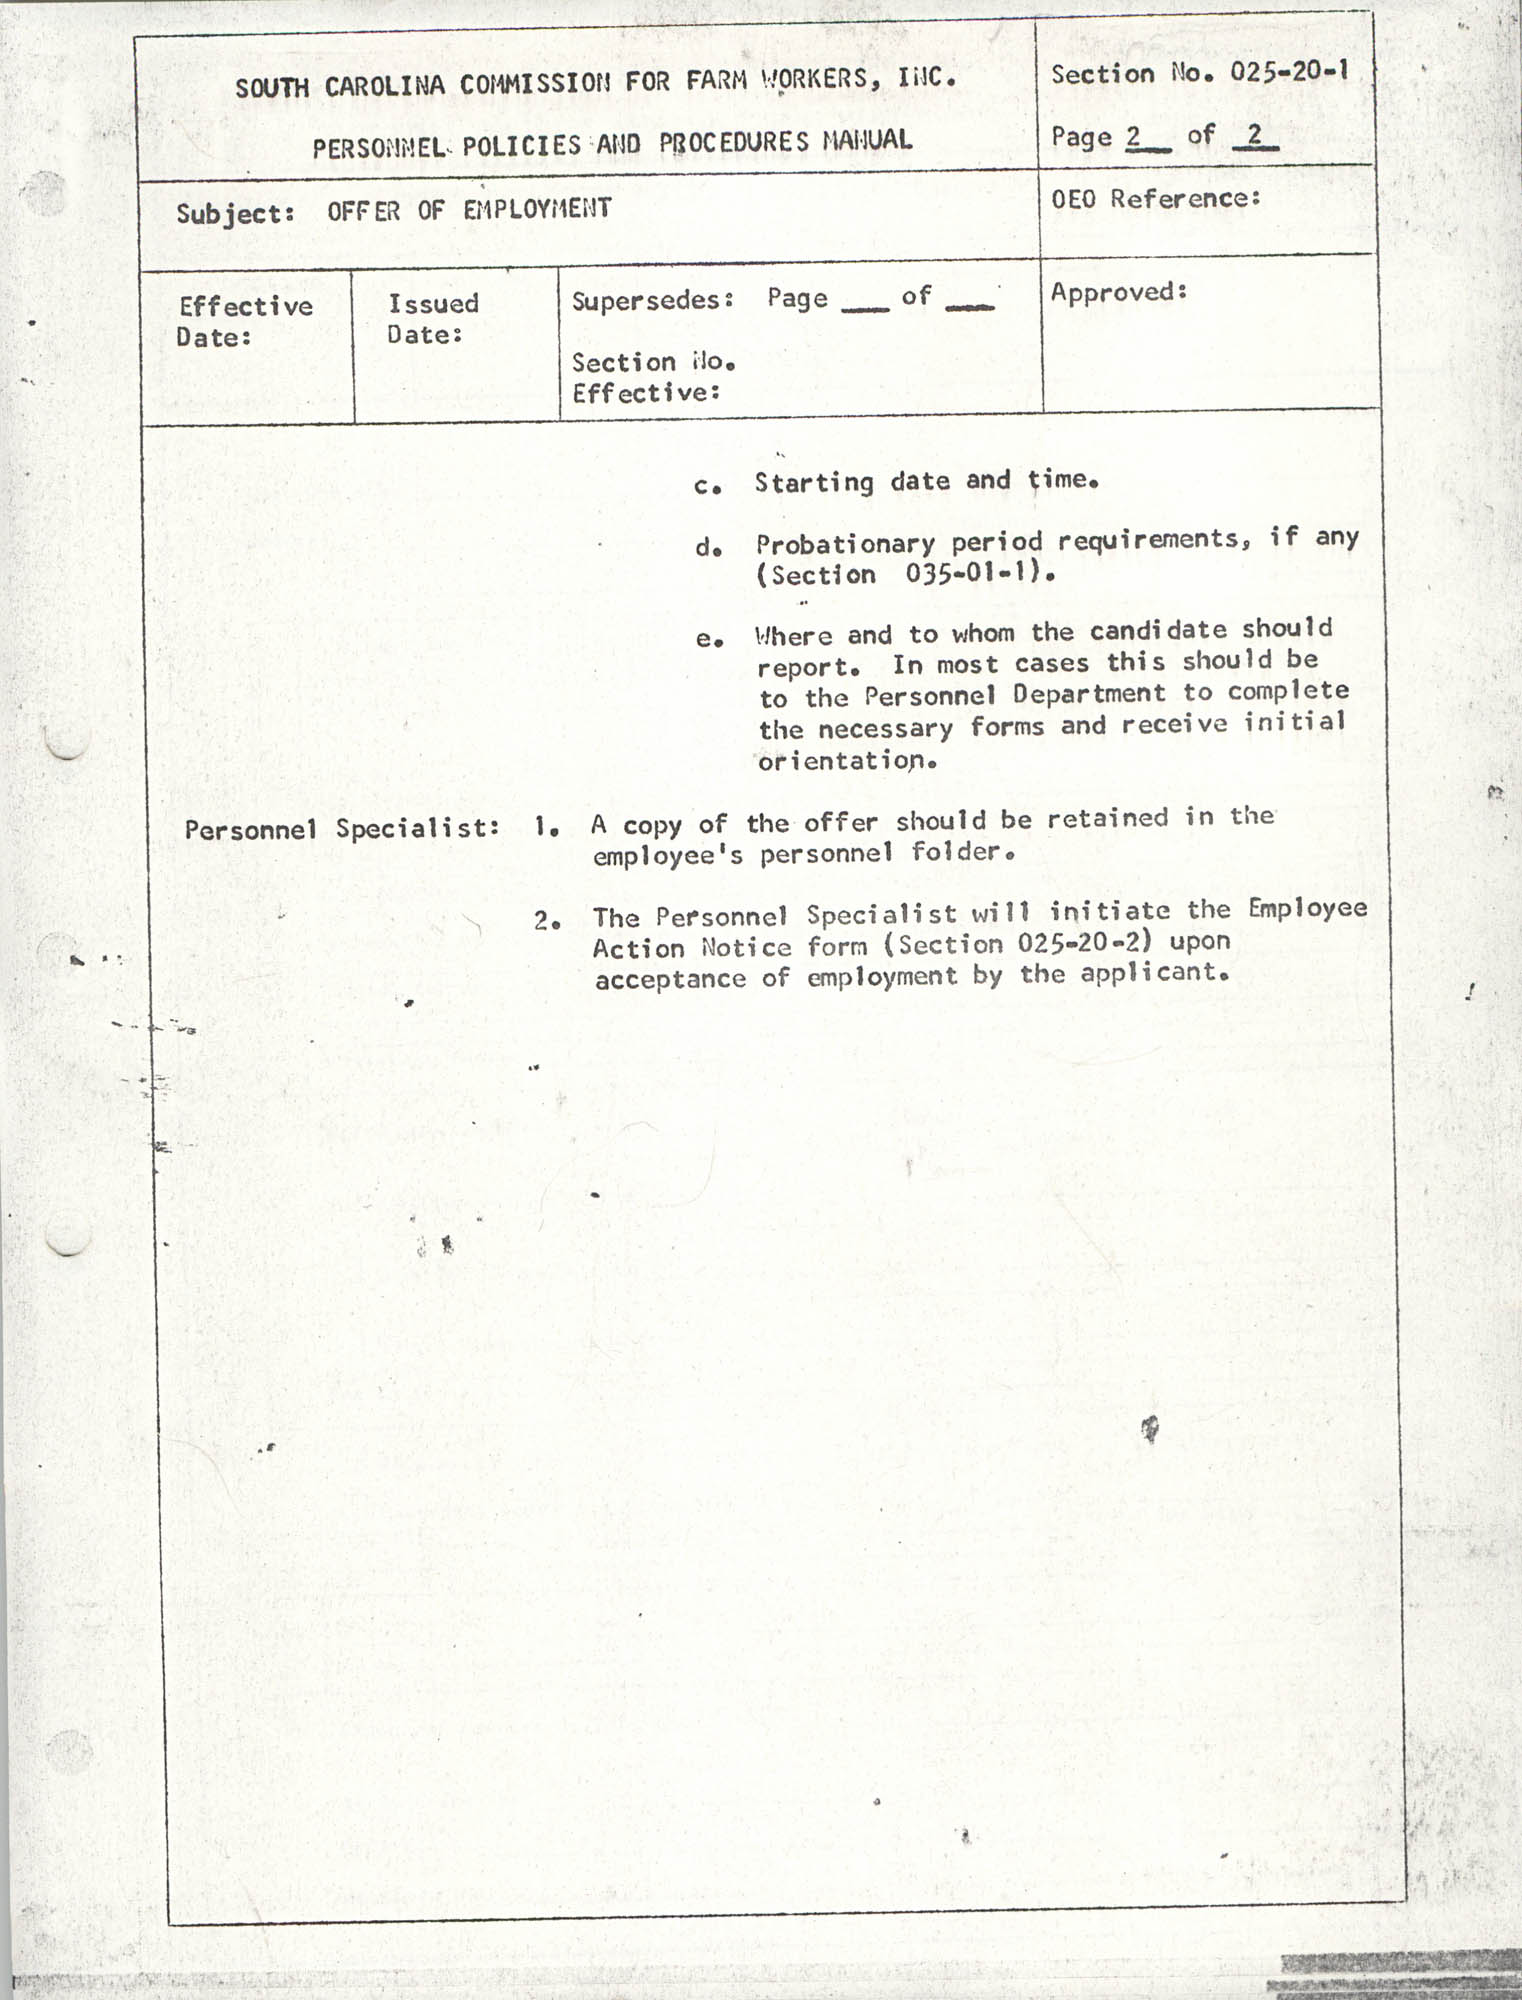 Personnel Policies and Procedures Manual, Section No. 025-20-1, Page 2